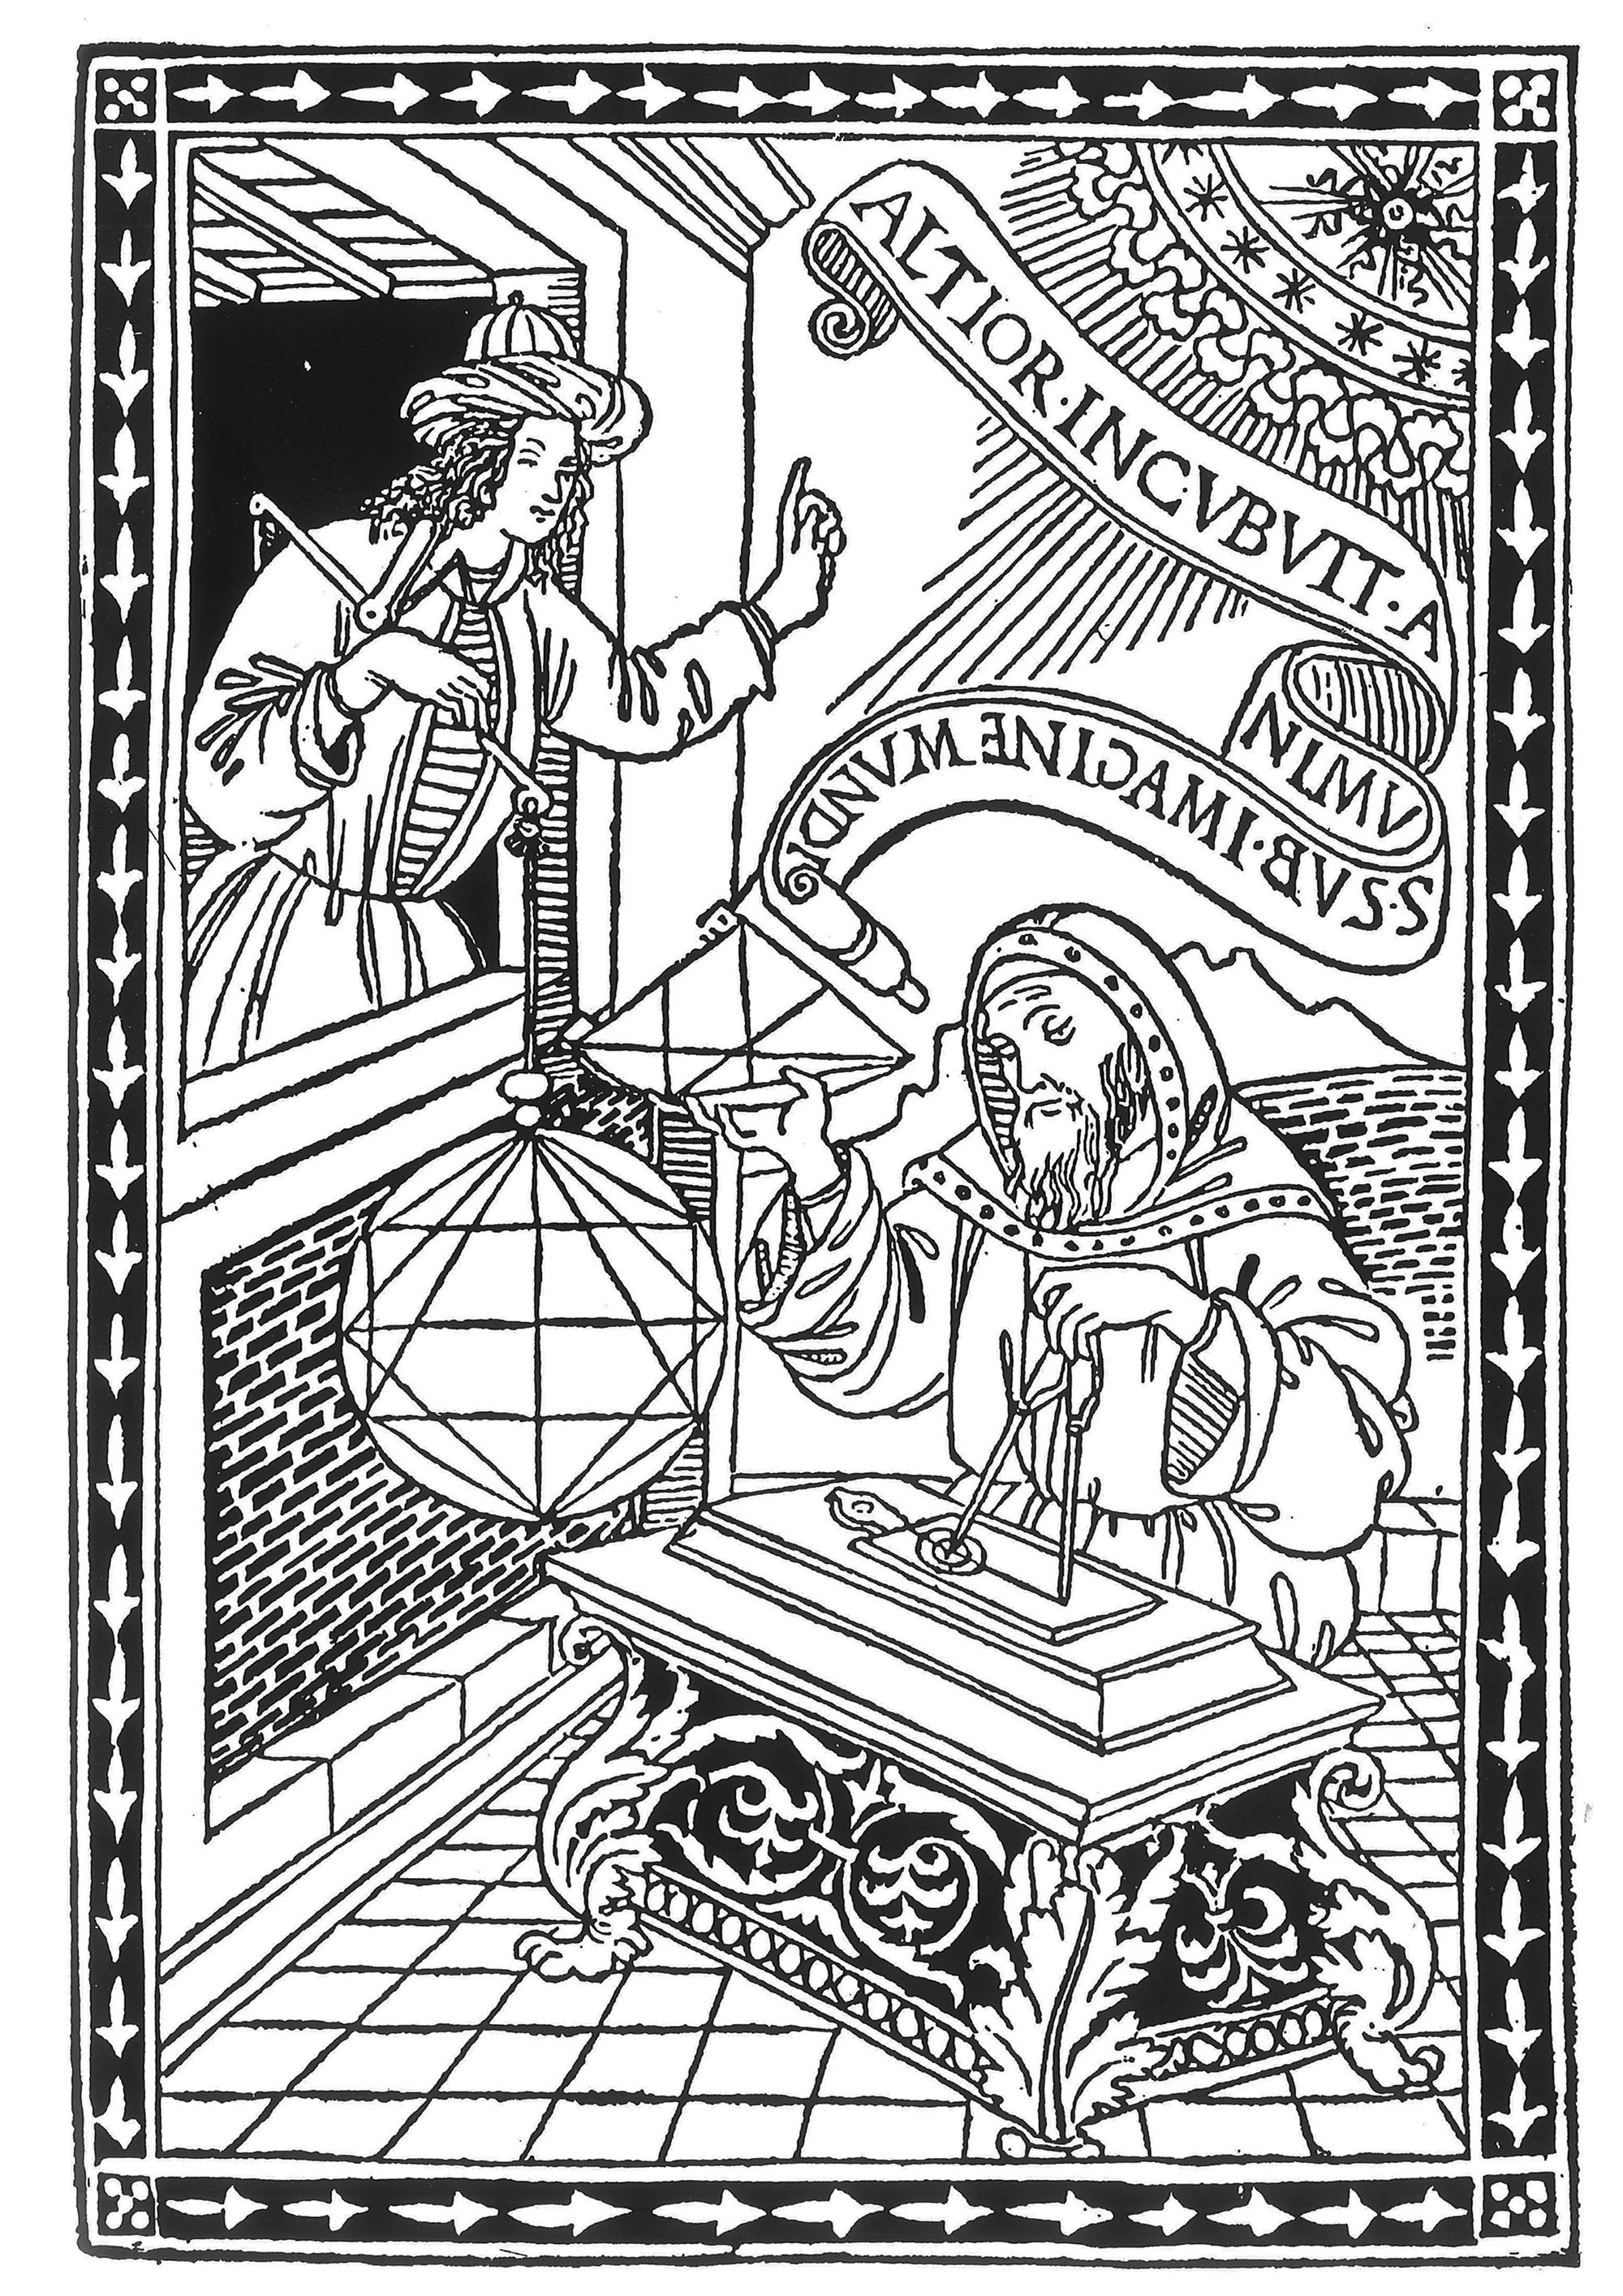 Middle ages engraving